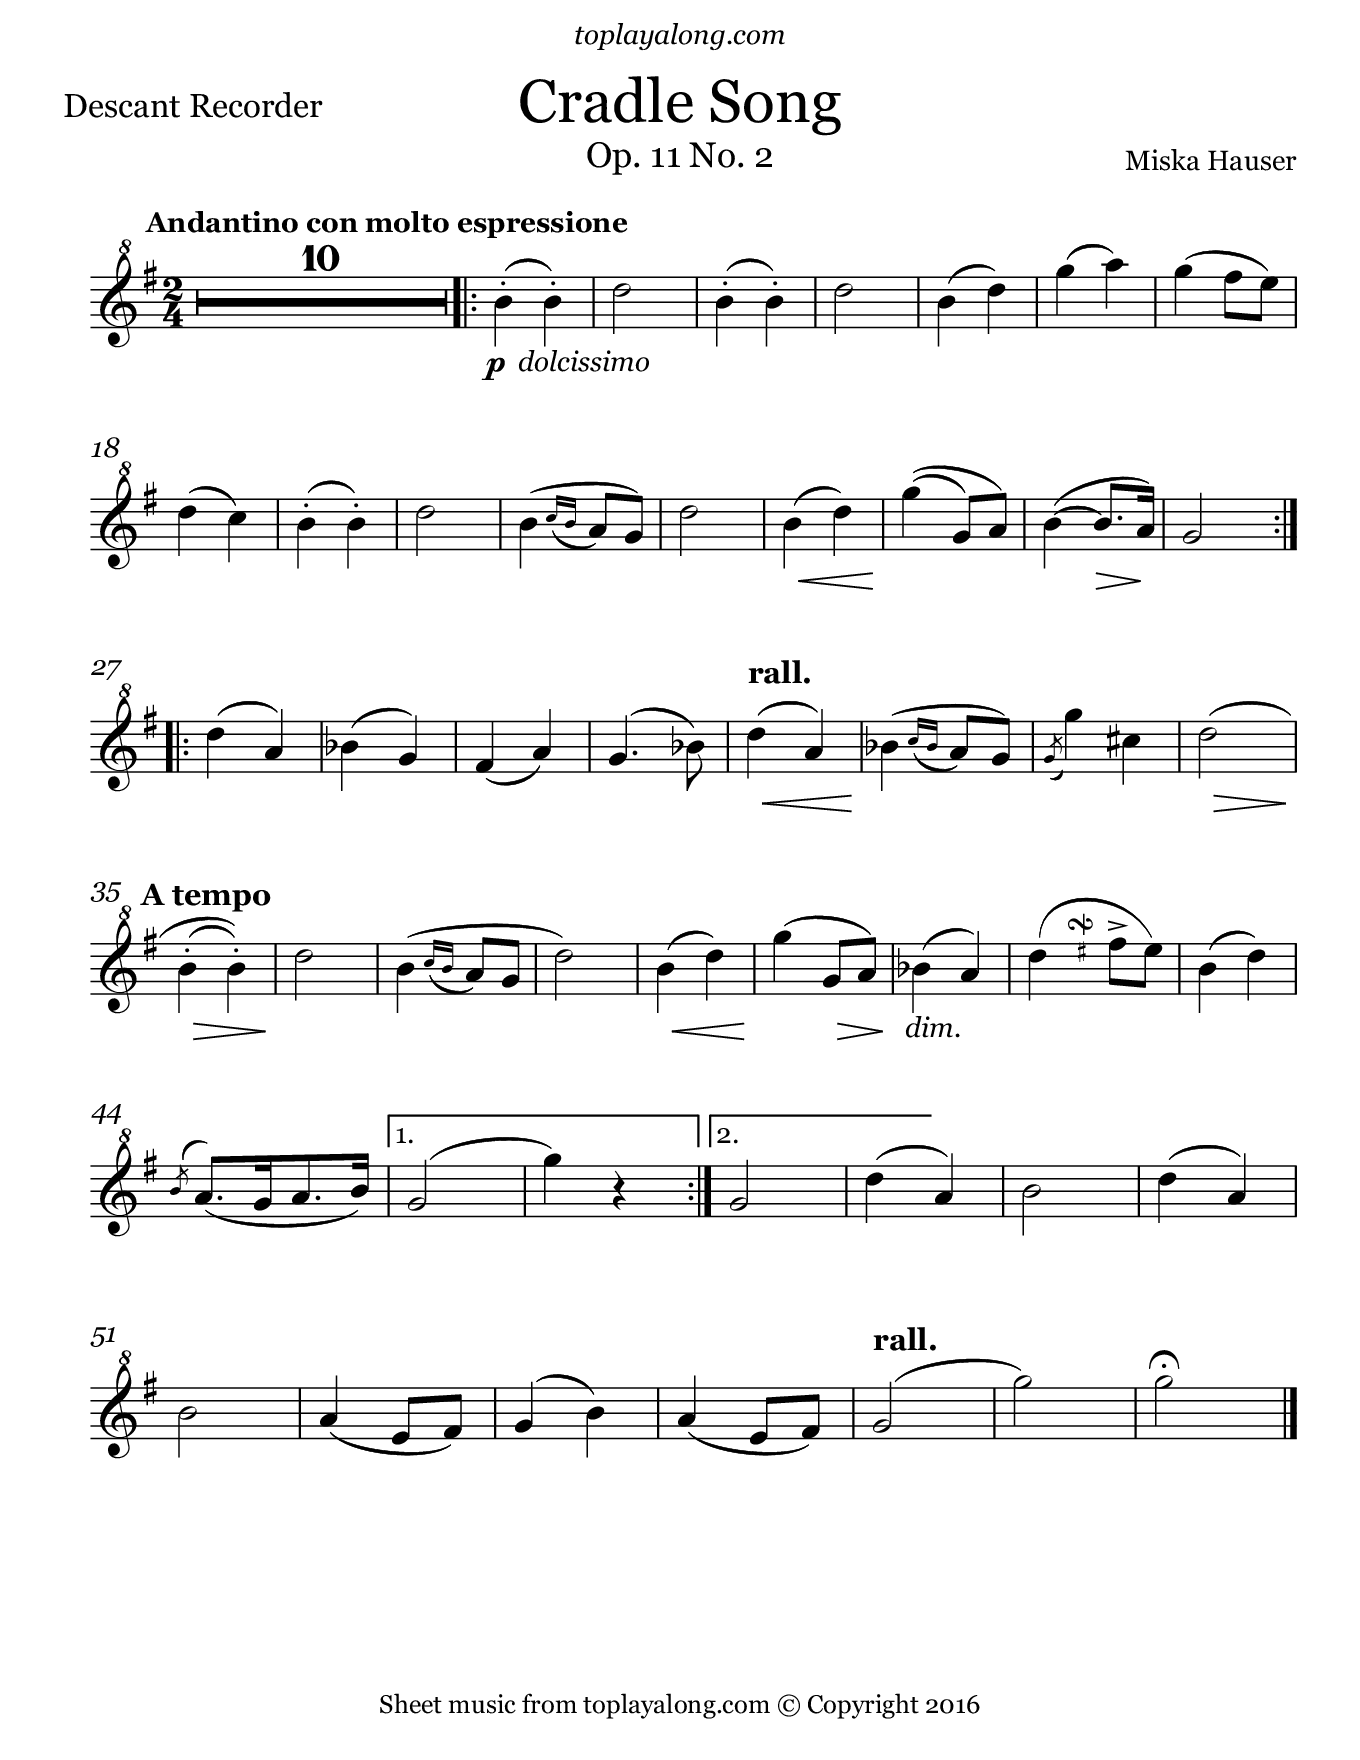 Cradle Song by Hauser. Sheet music for Recorder, page 1.